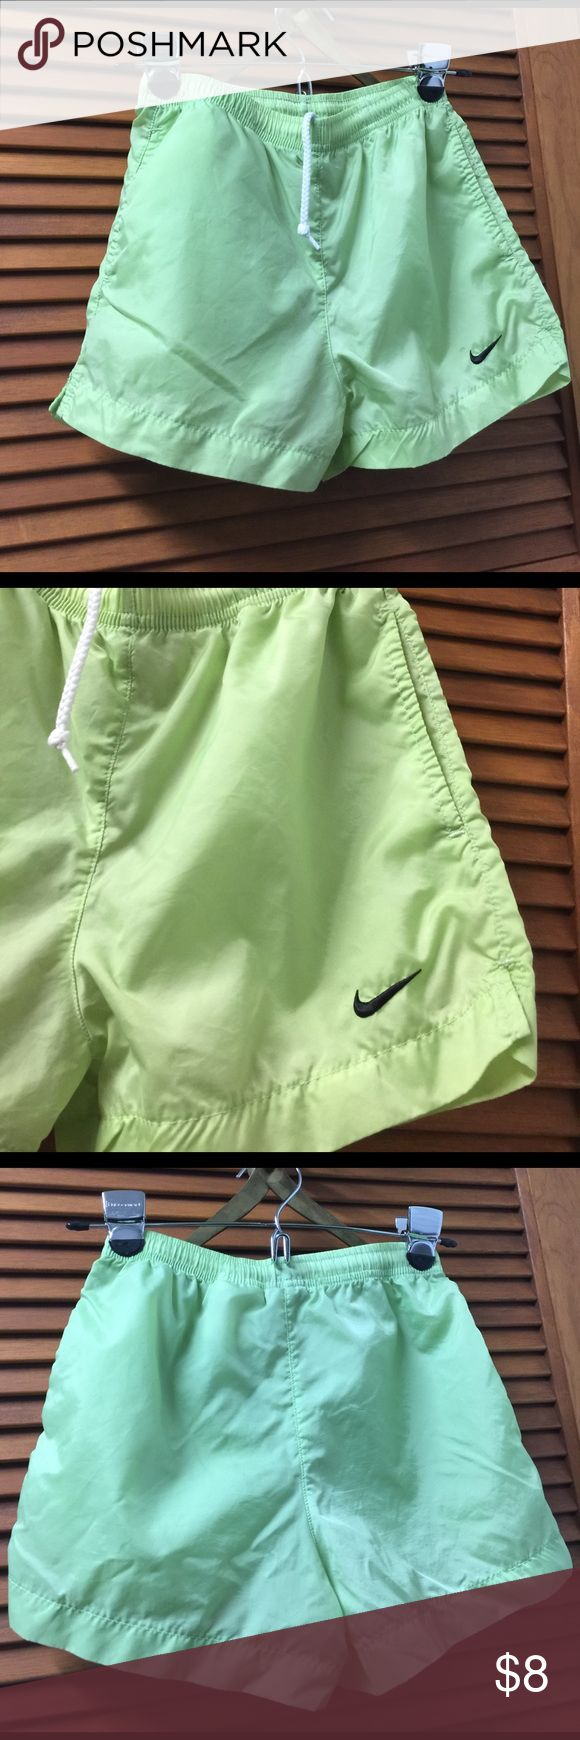 Nike Lime green Girls' Shorts Like new Nike Lime green Girls' Shorts are a lightweight nylon fabric. Timeless piece with draw strings. See pictures for fabric and care. Girls 7-8 Small Nike Bottoms Shorts